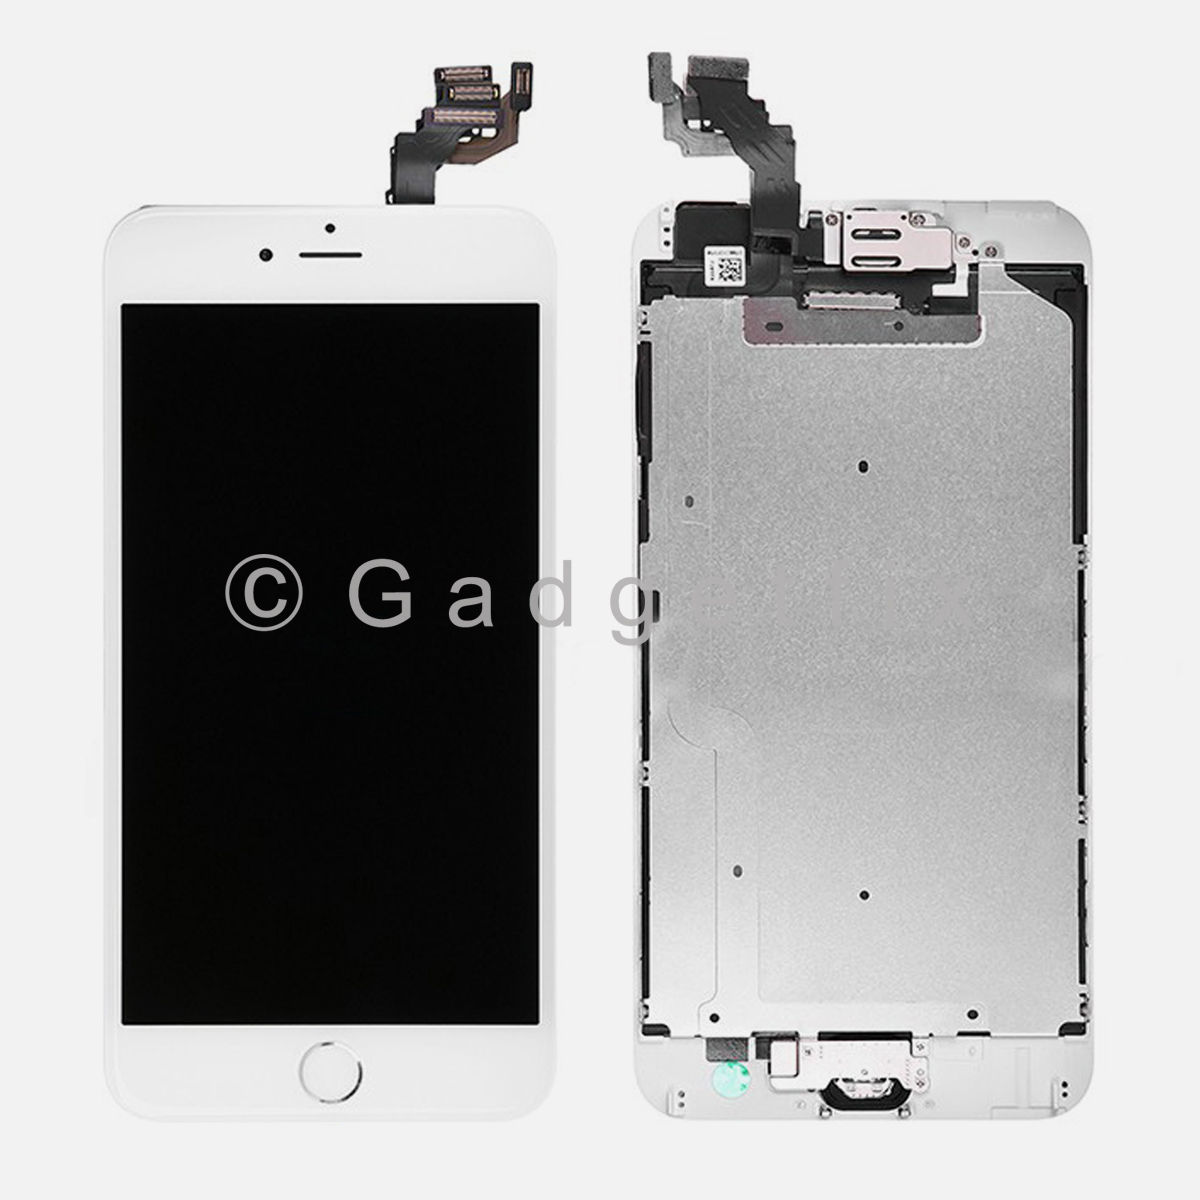 how to fix ghost touch screen iphone 6